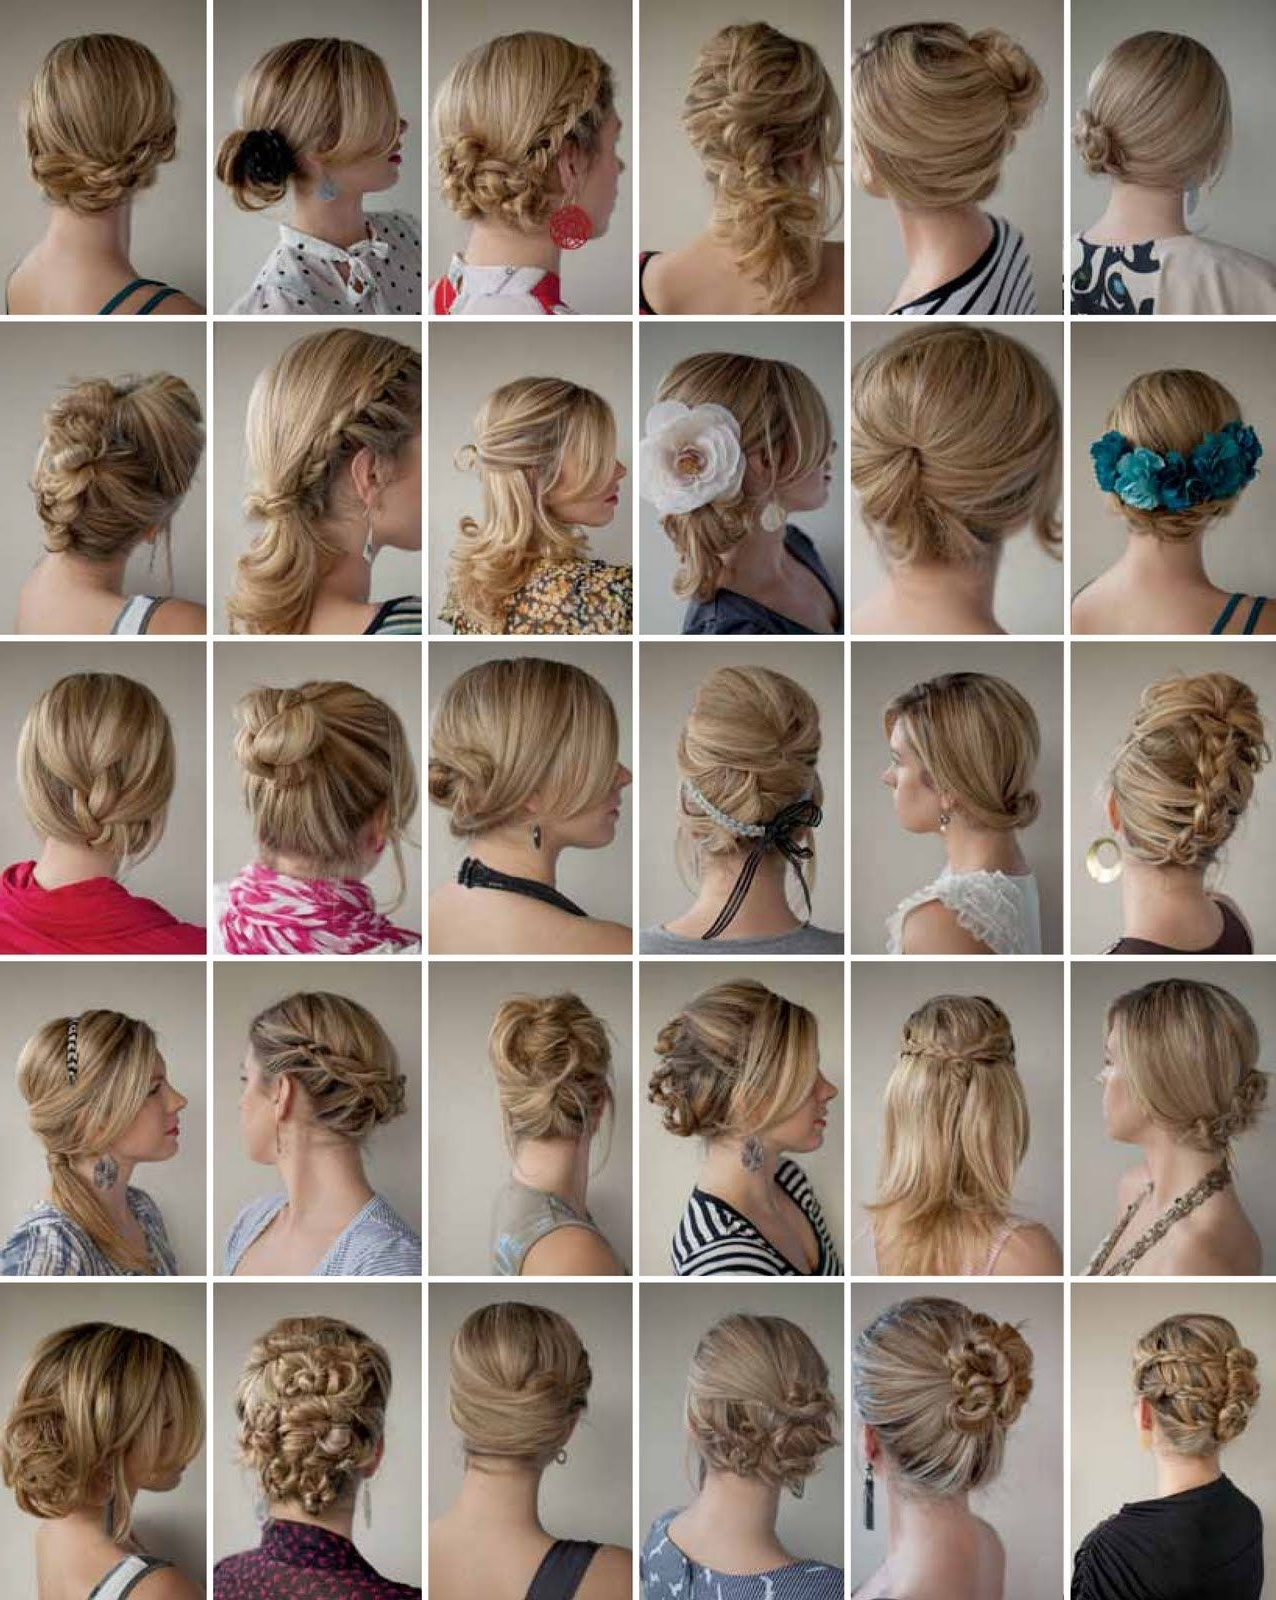 30 Photos Of Beautiful Hair Styles What Could Be Better Throughout Trendy Updo Hairstyles For Long Hair (View 13 of 15)